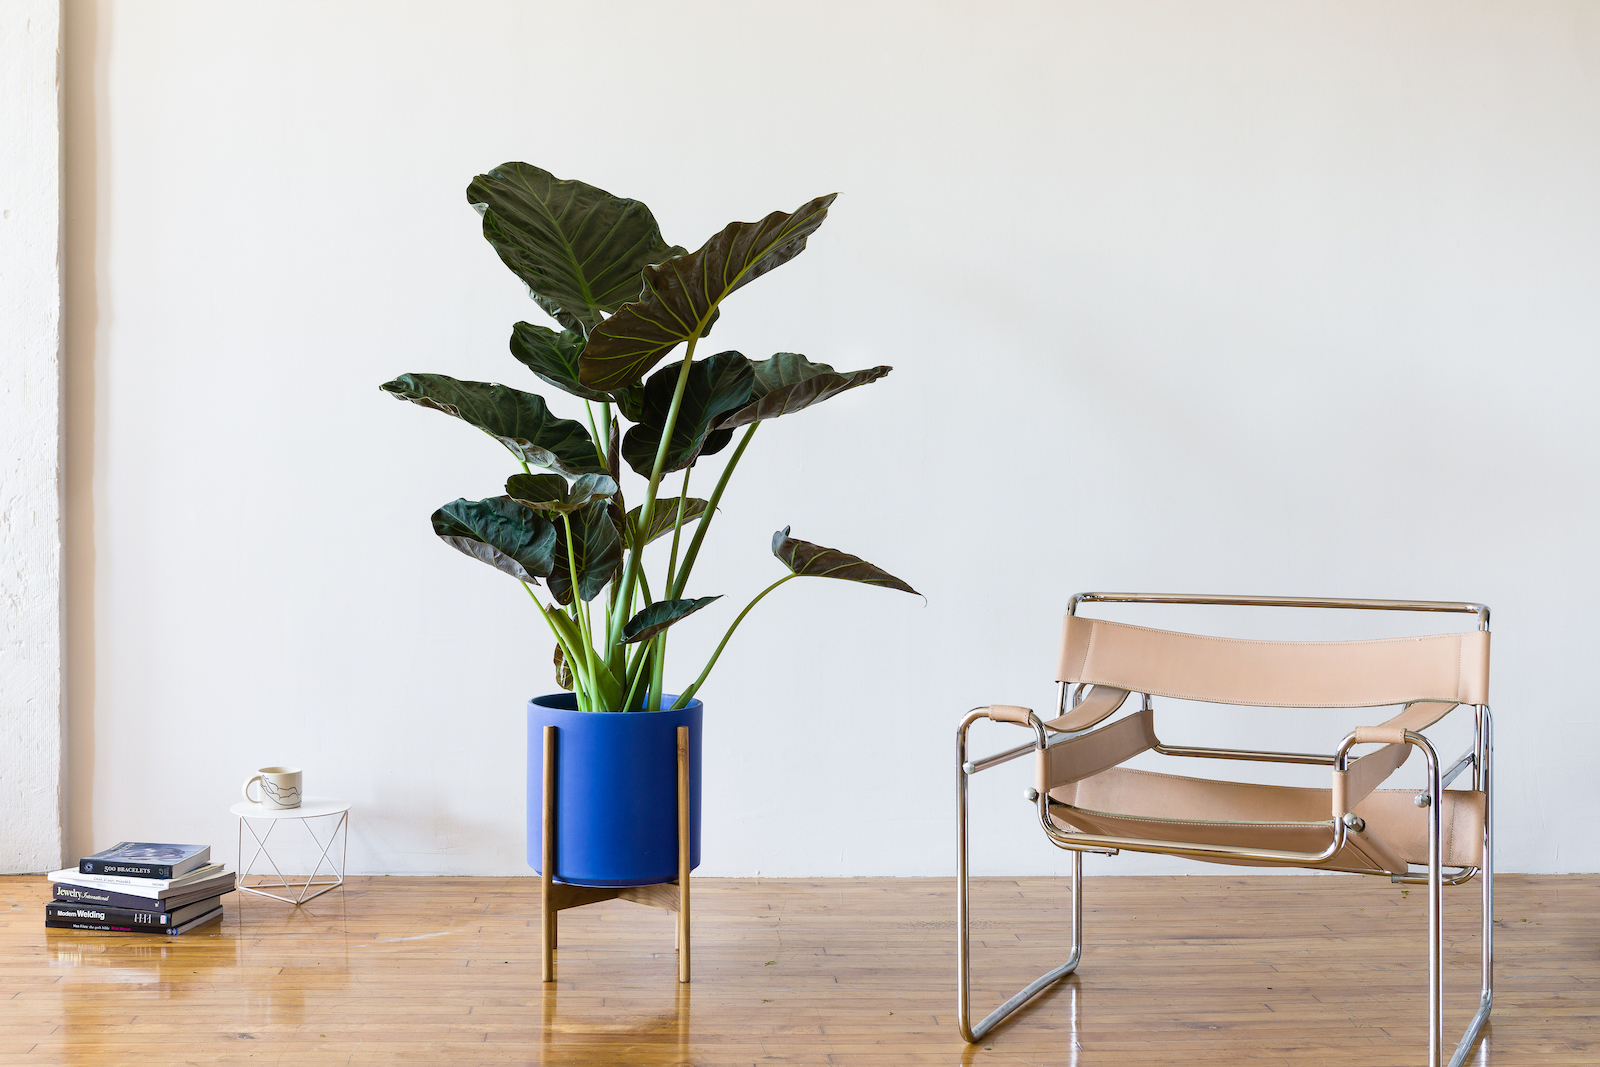 A brightly colored ceramic adds a bold splash of color to any style and brings out the foliage of plants like the  Elephant Ear .